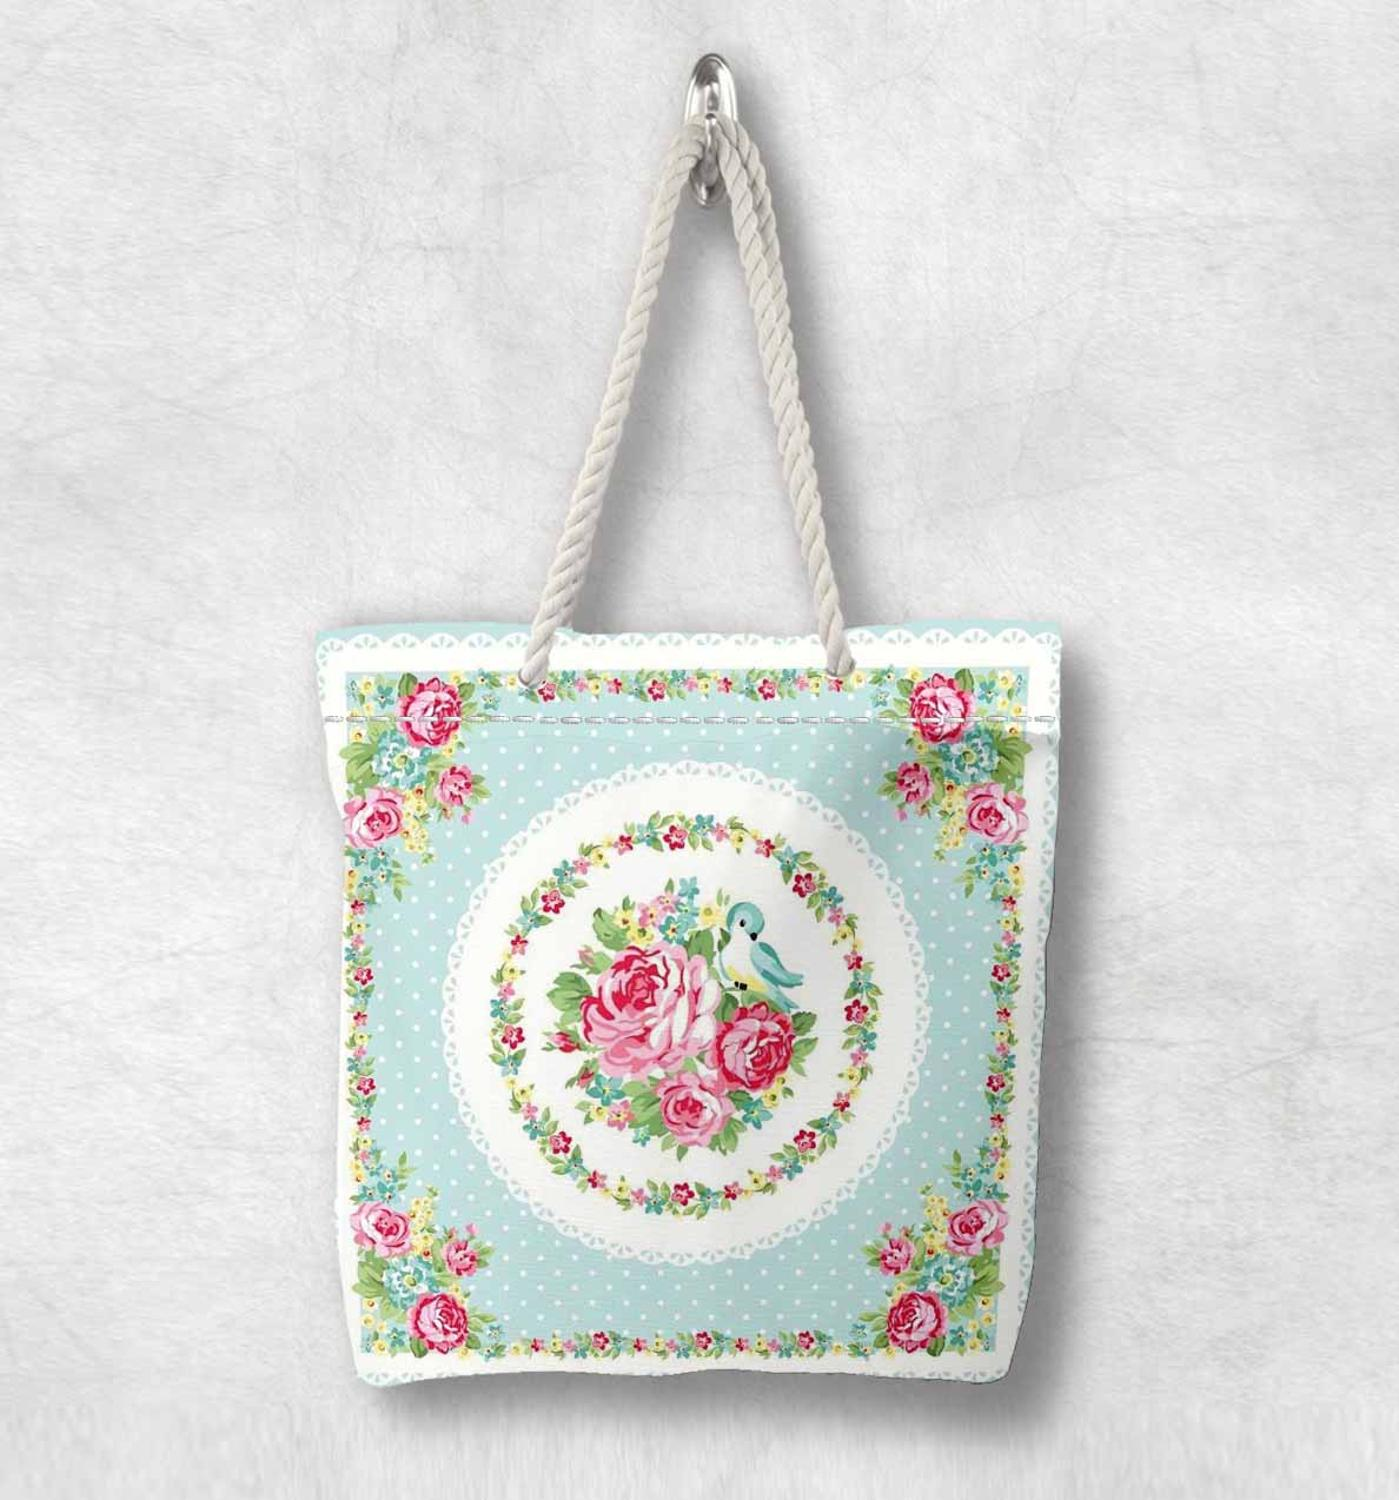 Else Blue Floor Pink Vintage Roses Flowers New Fashion White Rope Handle Canvas Bag Cotton Canvas Zippered Tote Bag Shoulder Bag